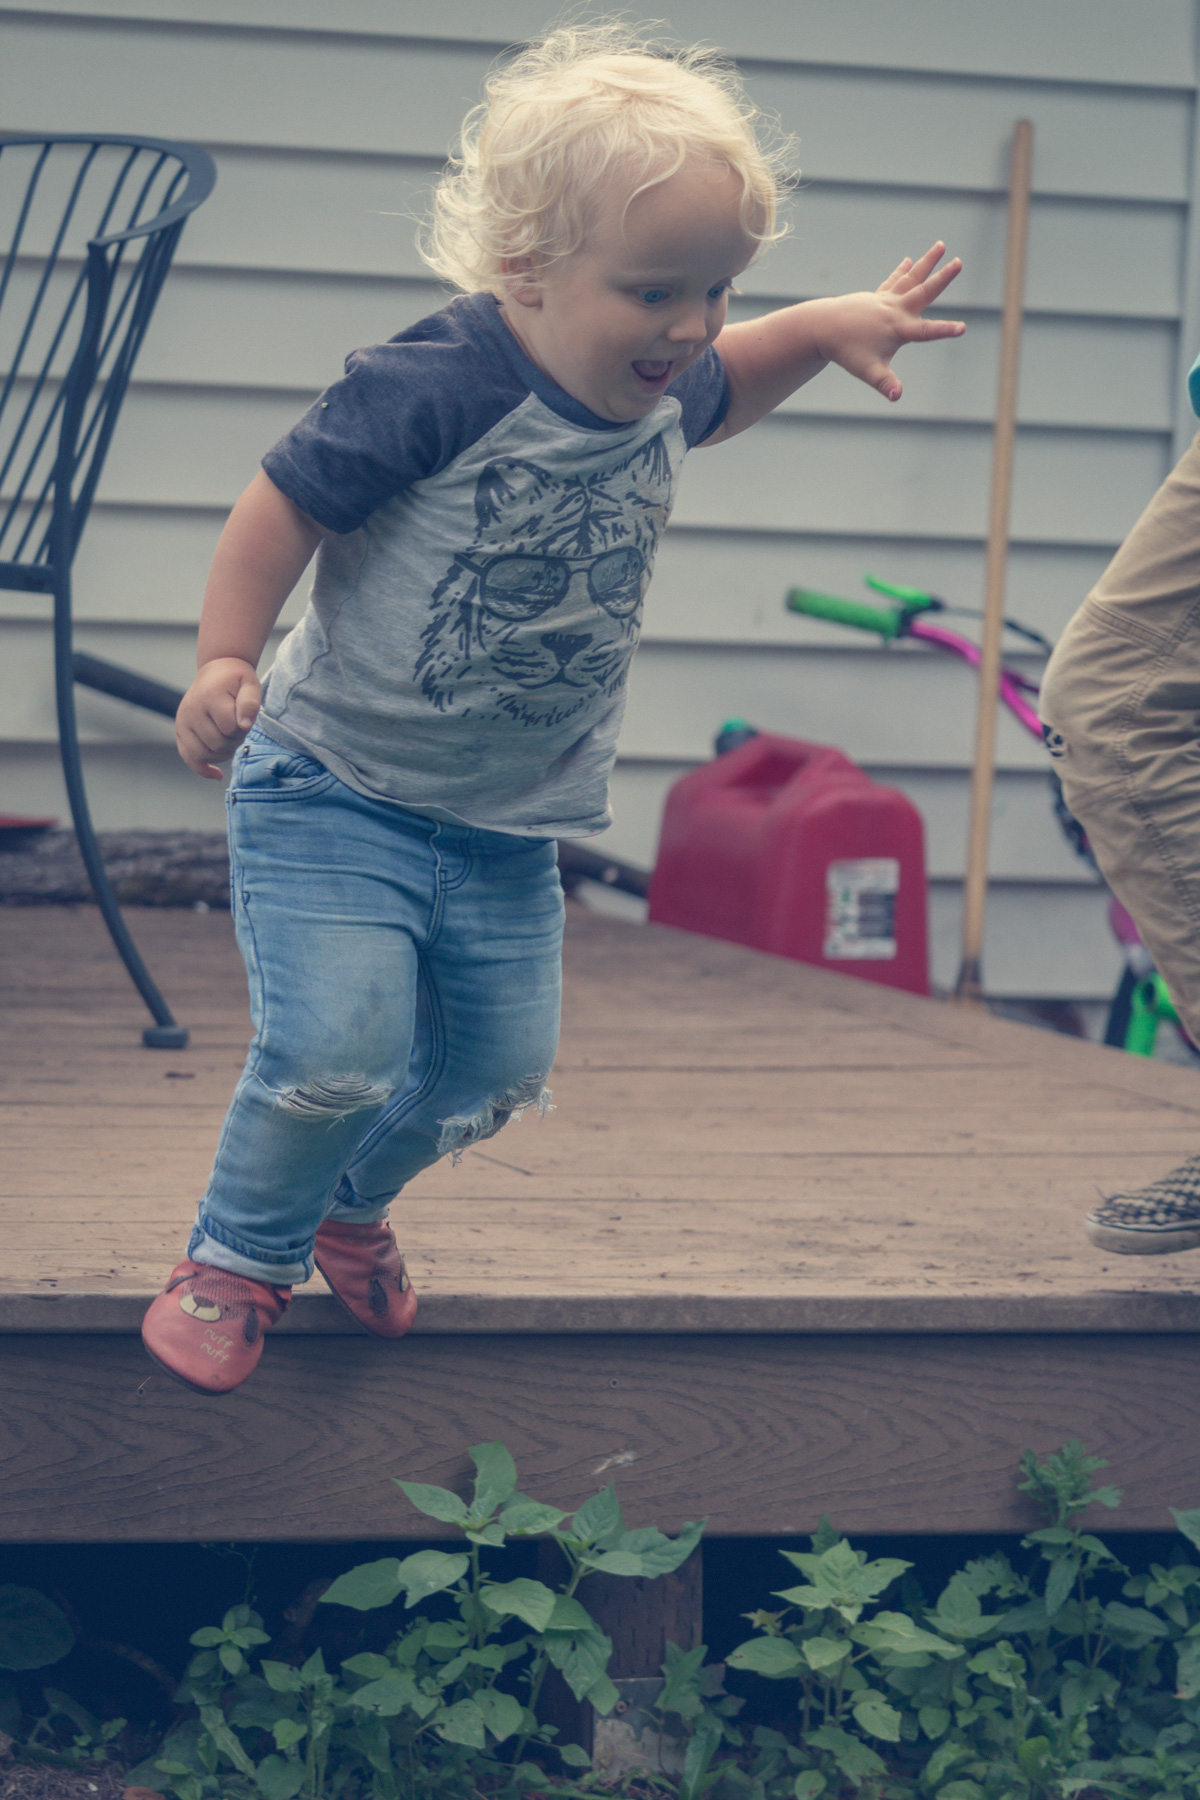 Two-year old boy jumping off house.